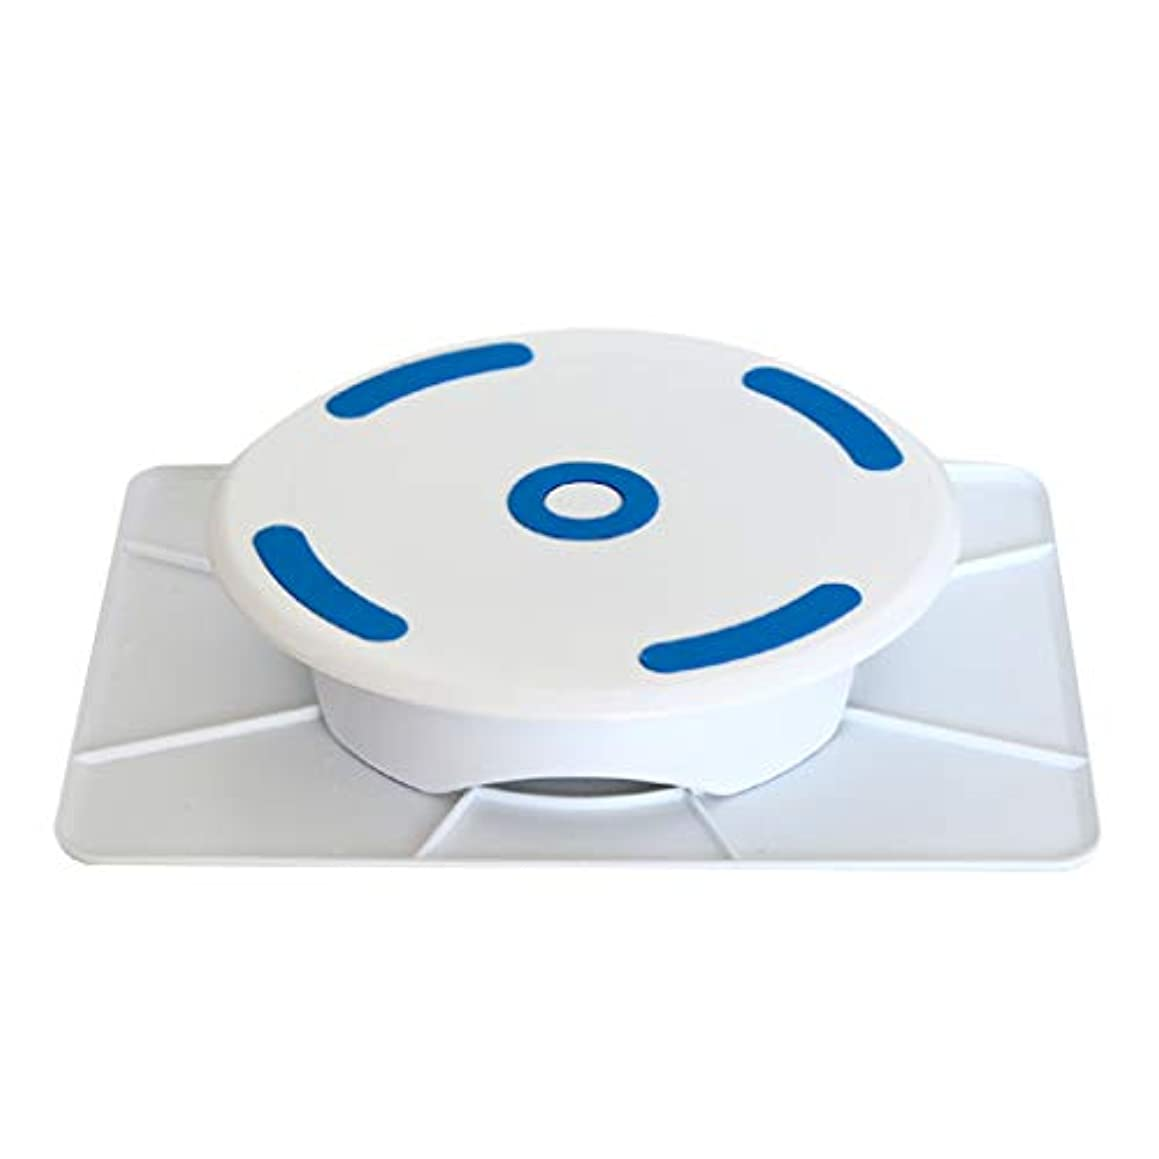 YunZyun Cake Turntable Round and Square Turntable Double-Sided Turntable Cake Turntable Baking Tools for Home Baking (White)